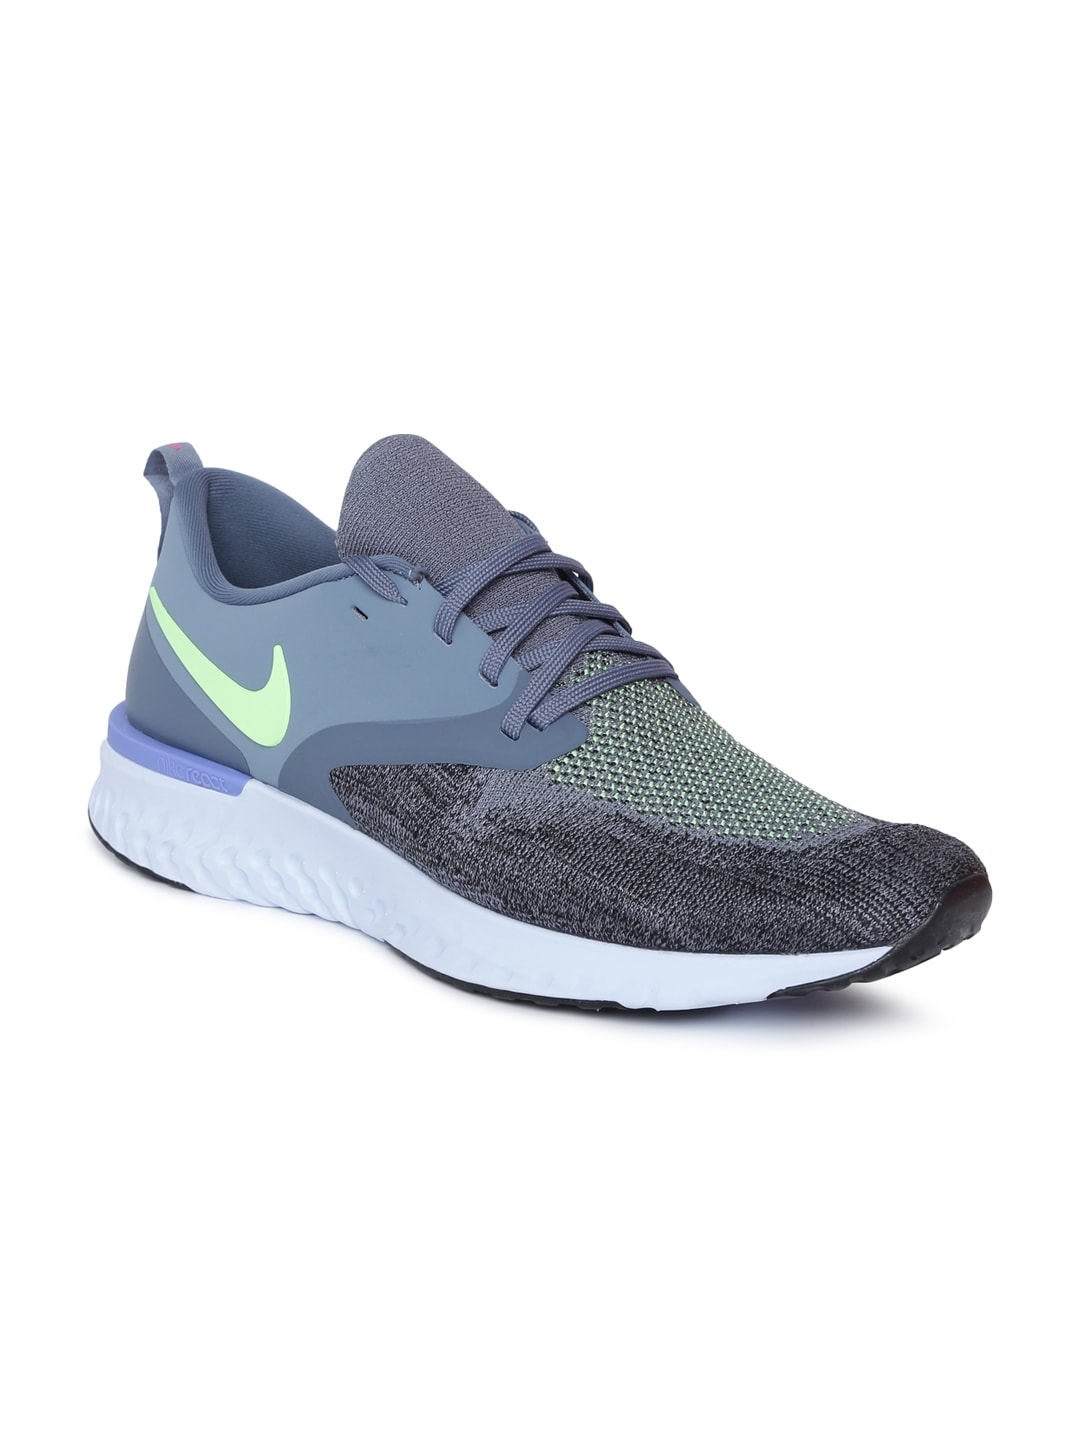 ffa36d3cdfca Nike Running Shoes - Buy Nike Running Shoes Online